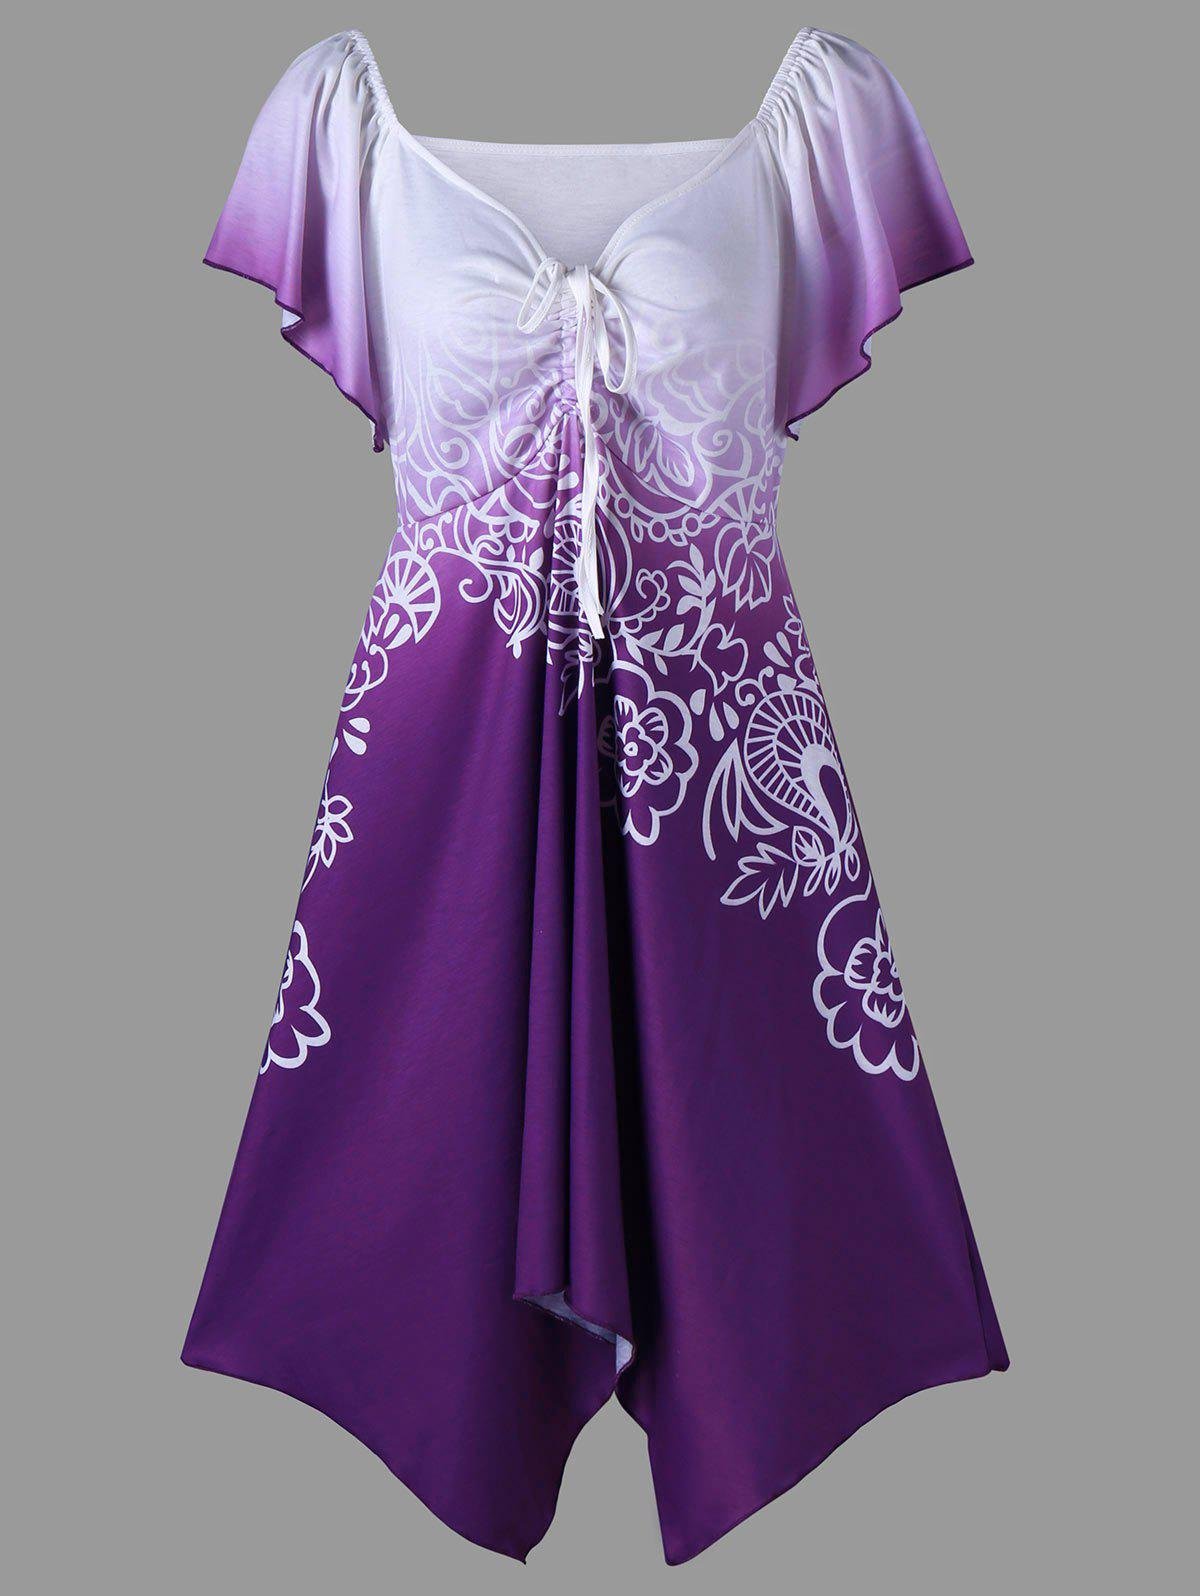 Short Sleeve Plus Size Flower Tunic T-ShirtWOMEN<br><br>Size: XL; Color: PURPLE; Material: Polyester,Spandex; Shirt Length: Long; Sleeve Length: Short; Collar: V-Neck; Style: Casual; Season: Summer; Sleeve Type: Batwing Sleeve; Pattern Type: Floral; Elasticity: Elastic; Weight: 0.3500kg; Package Contents: 1 x T-Shirt;